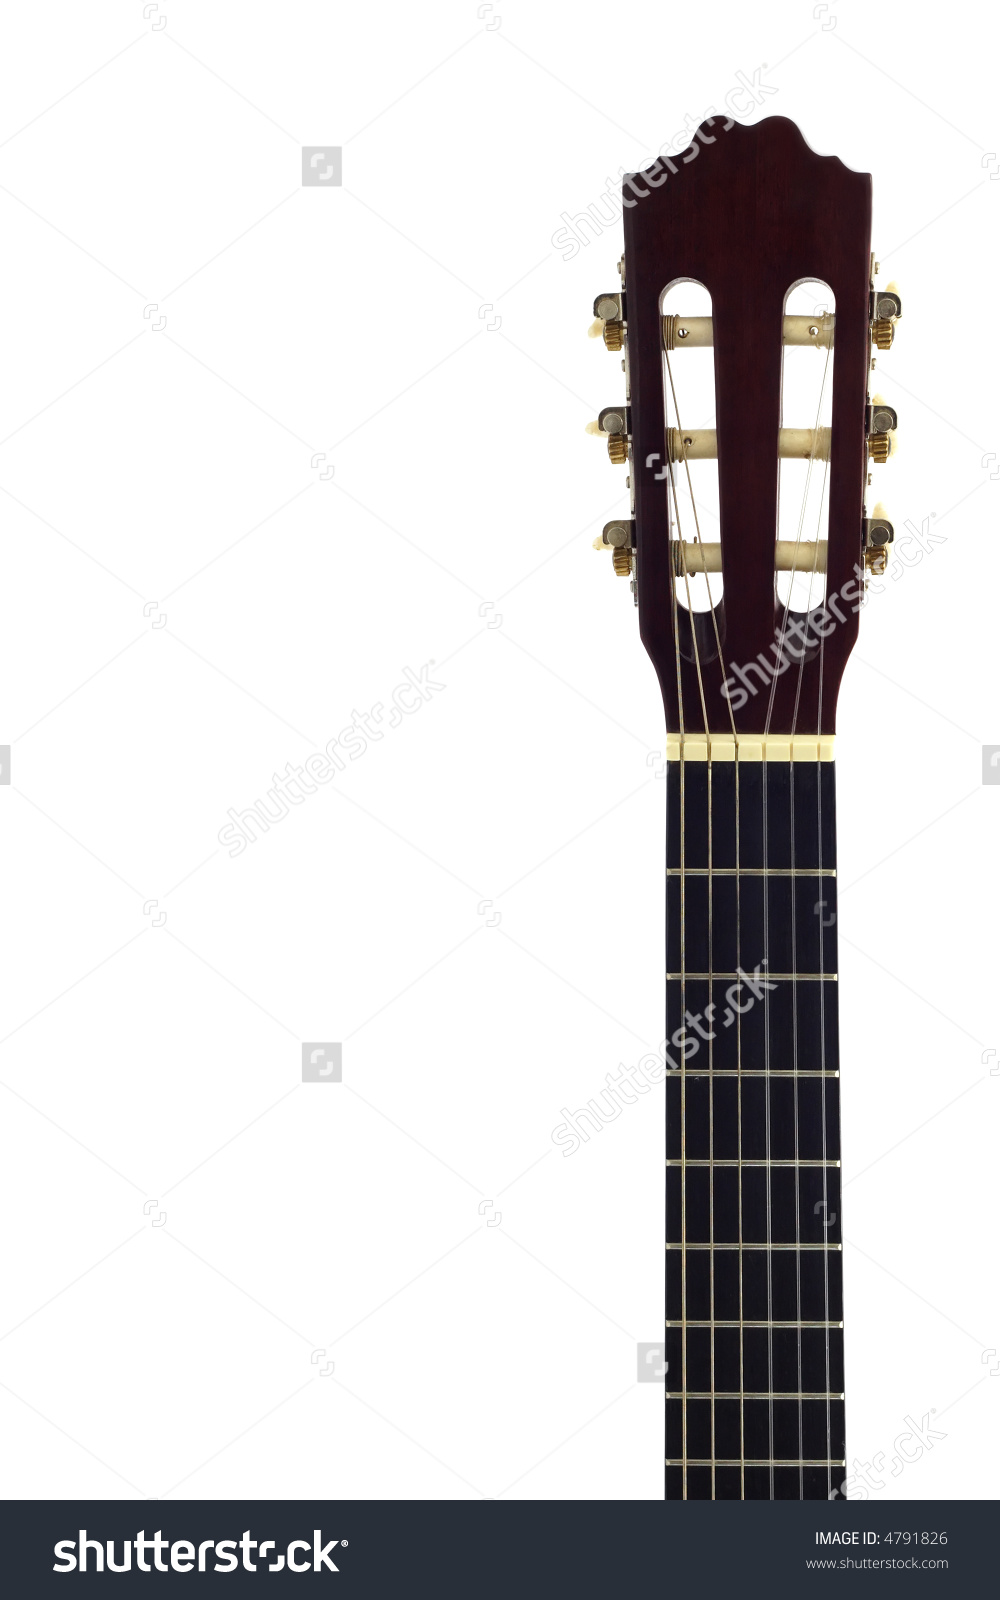 Acoustic Guitar Neck Isolated On White Stock Photo 4791826.